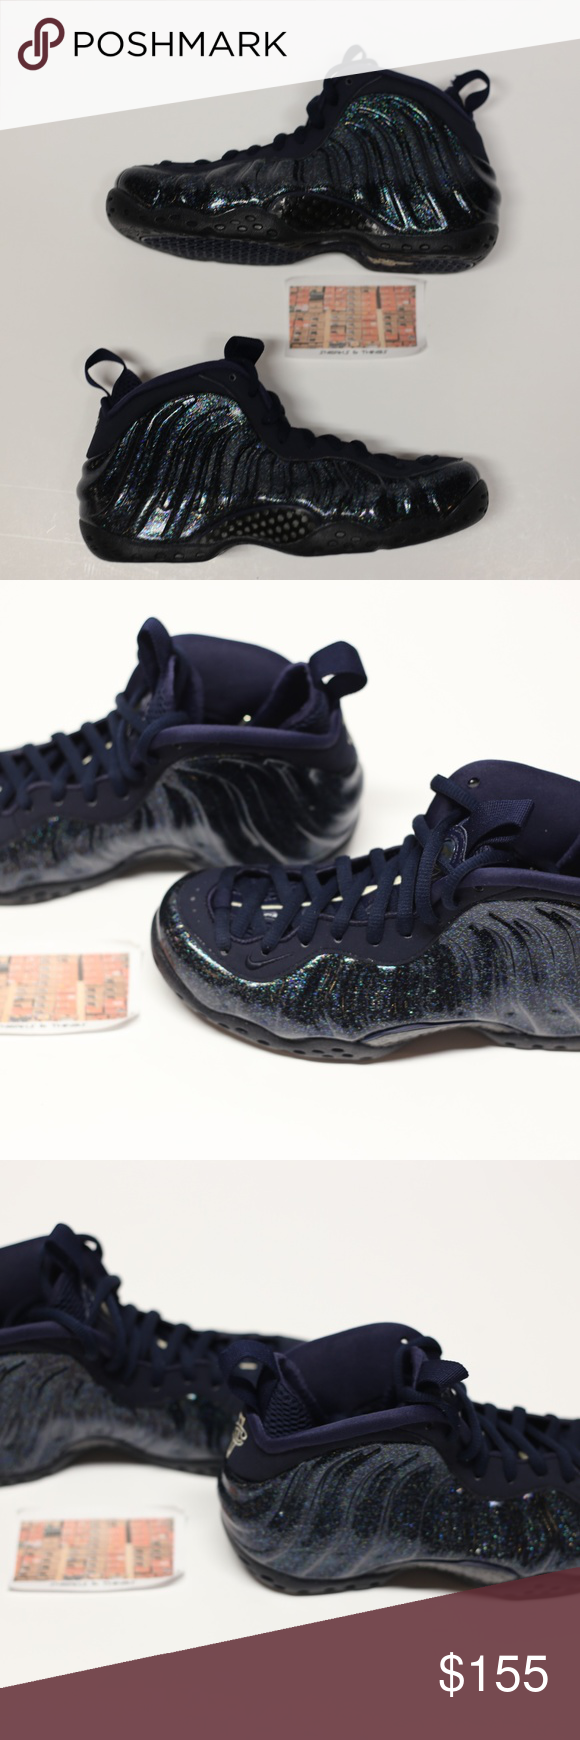 Nike Air Foamposite One Prm Triple Black 2014 Gs Grailed